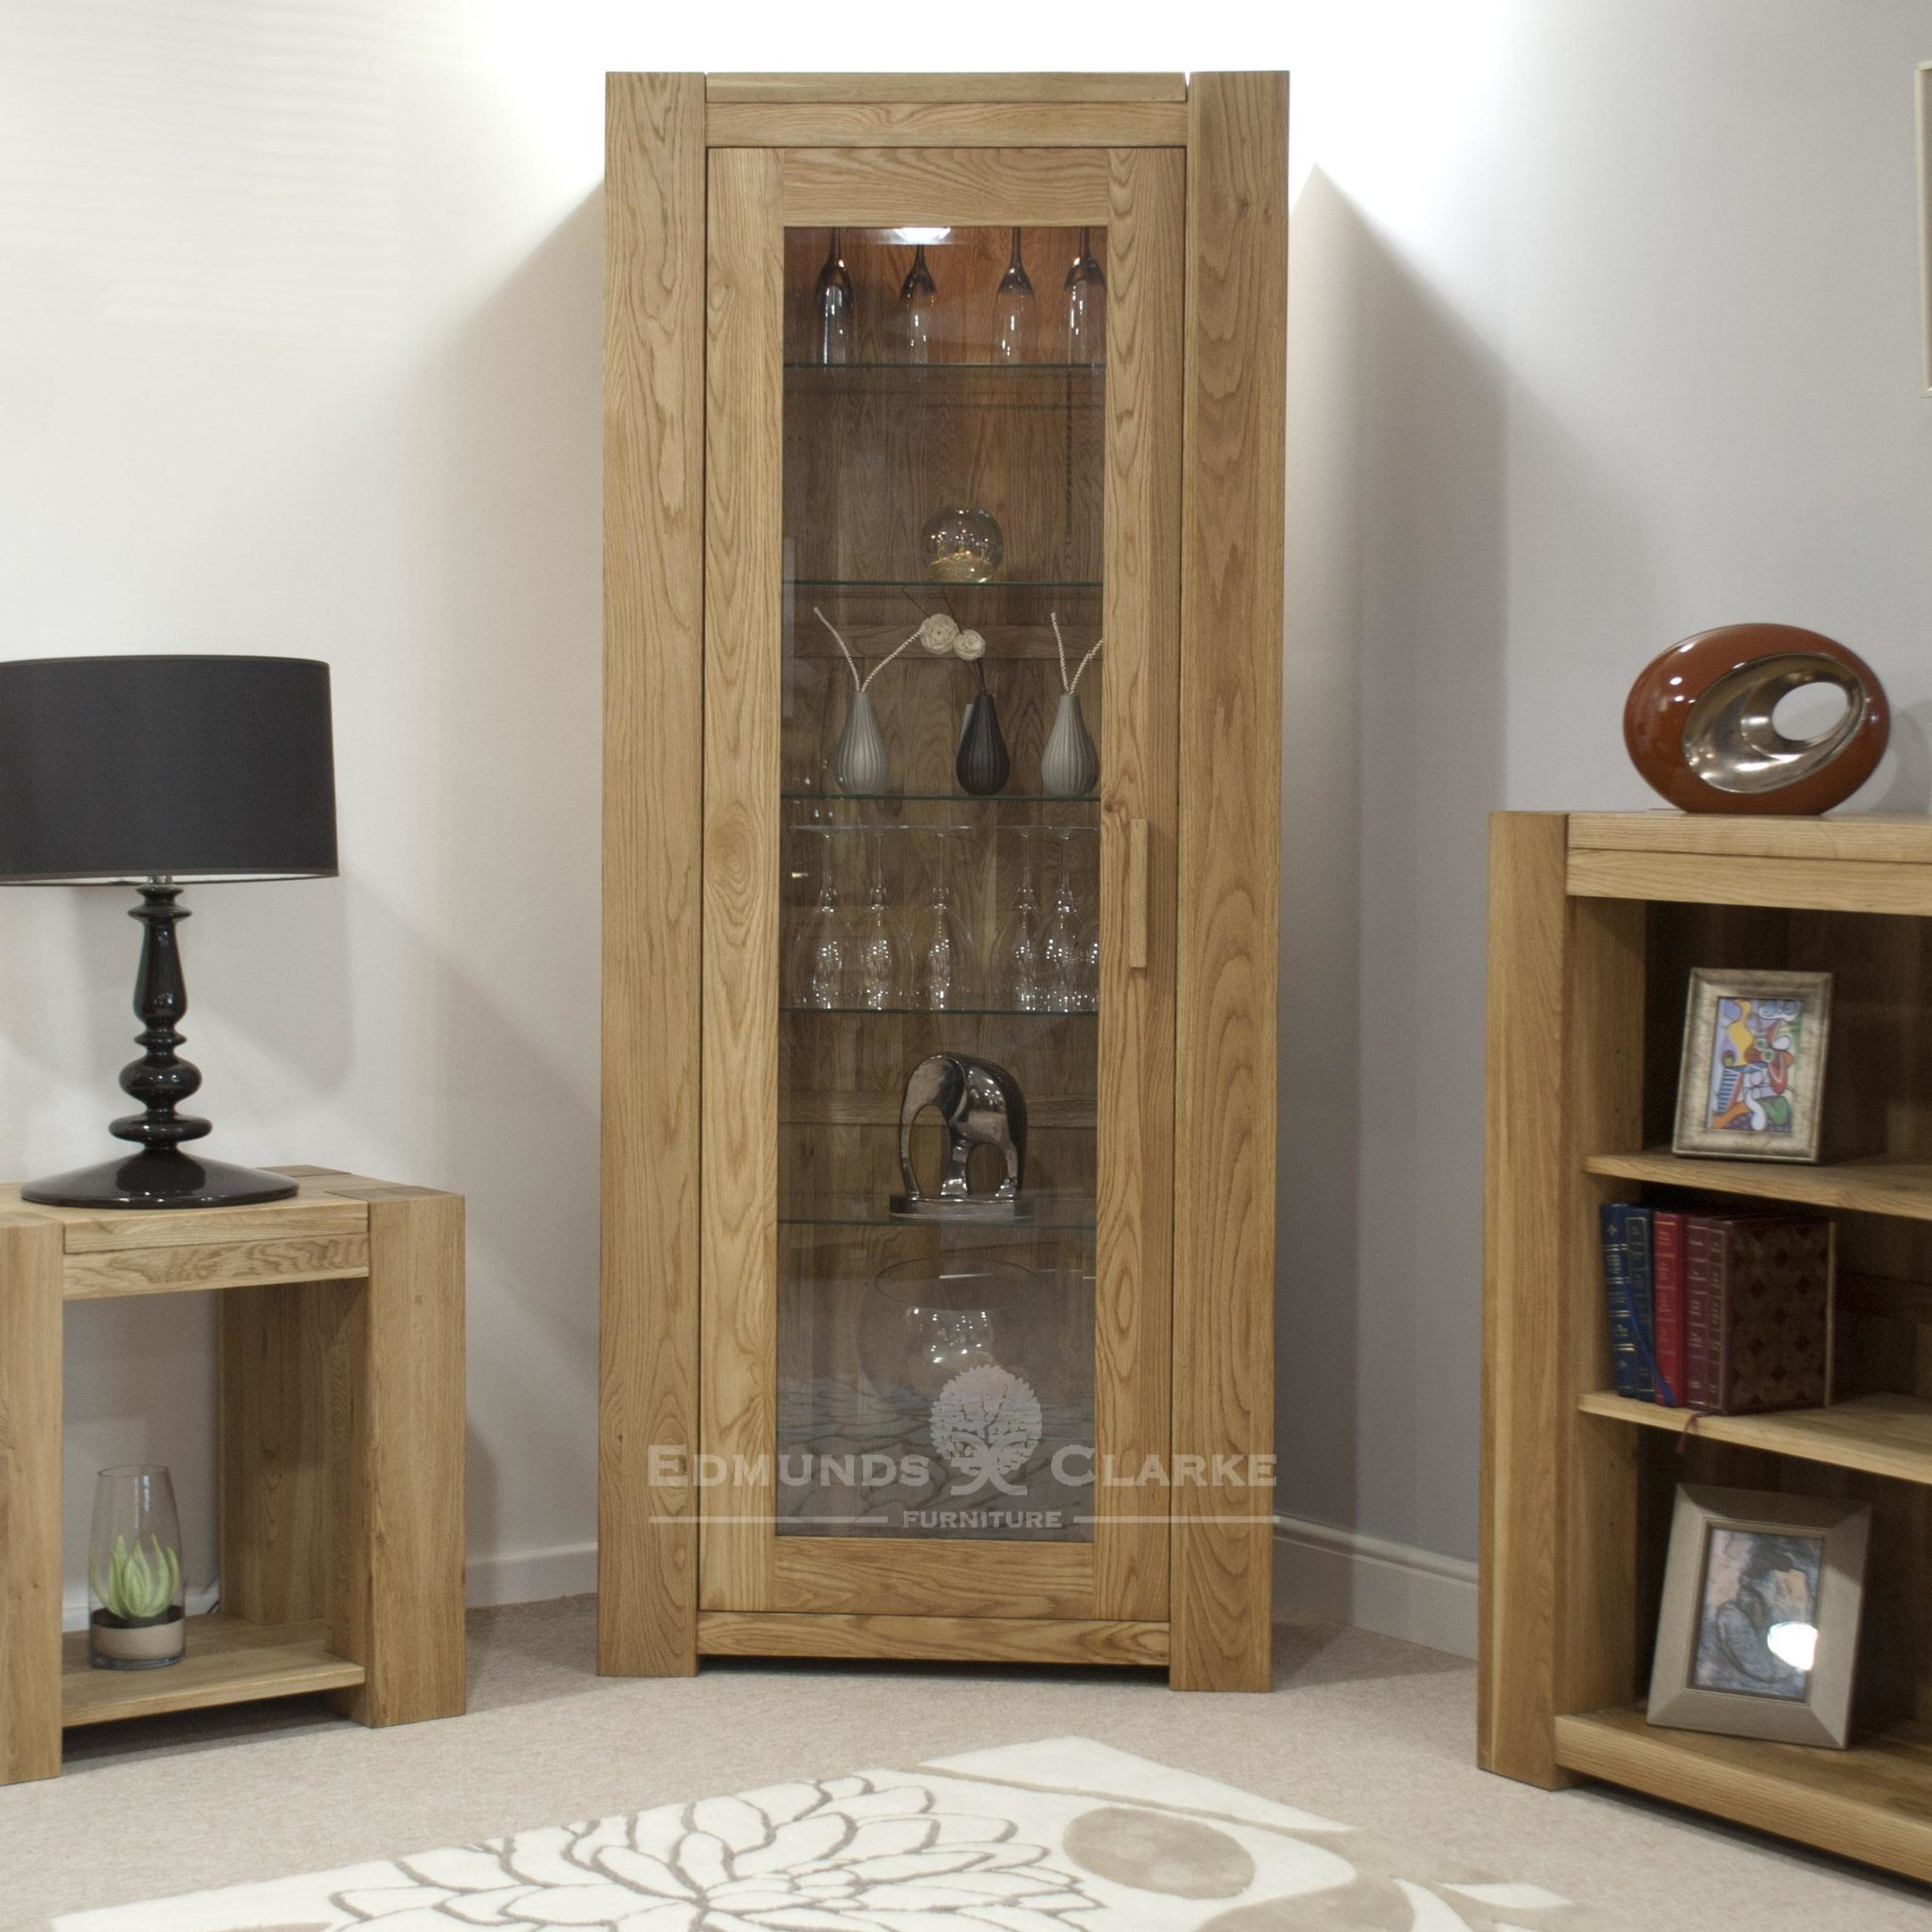 Newmarket solid oak chunky style glazed display cabinet with glass shelves and lights